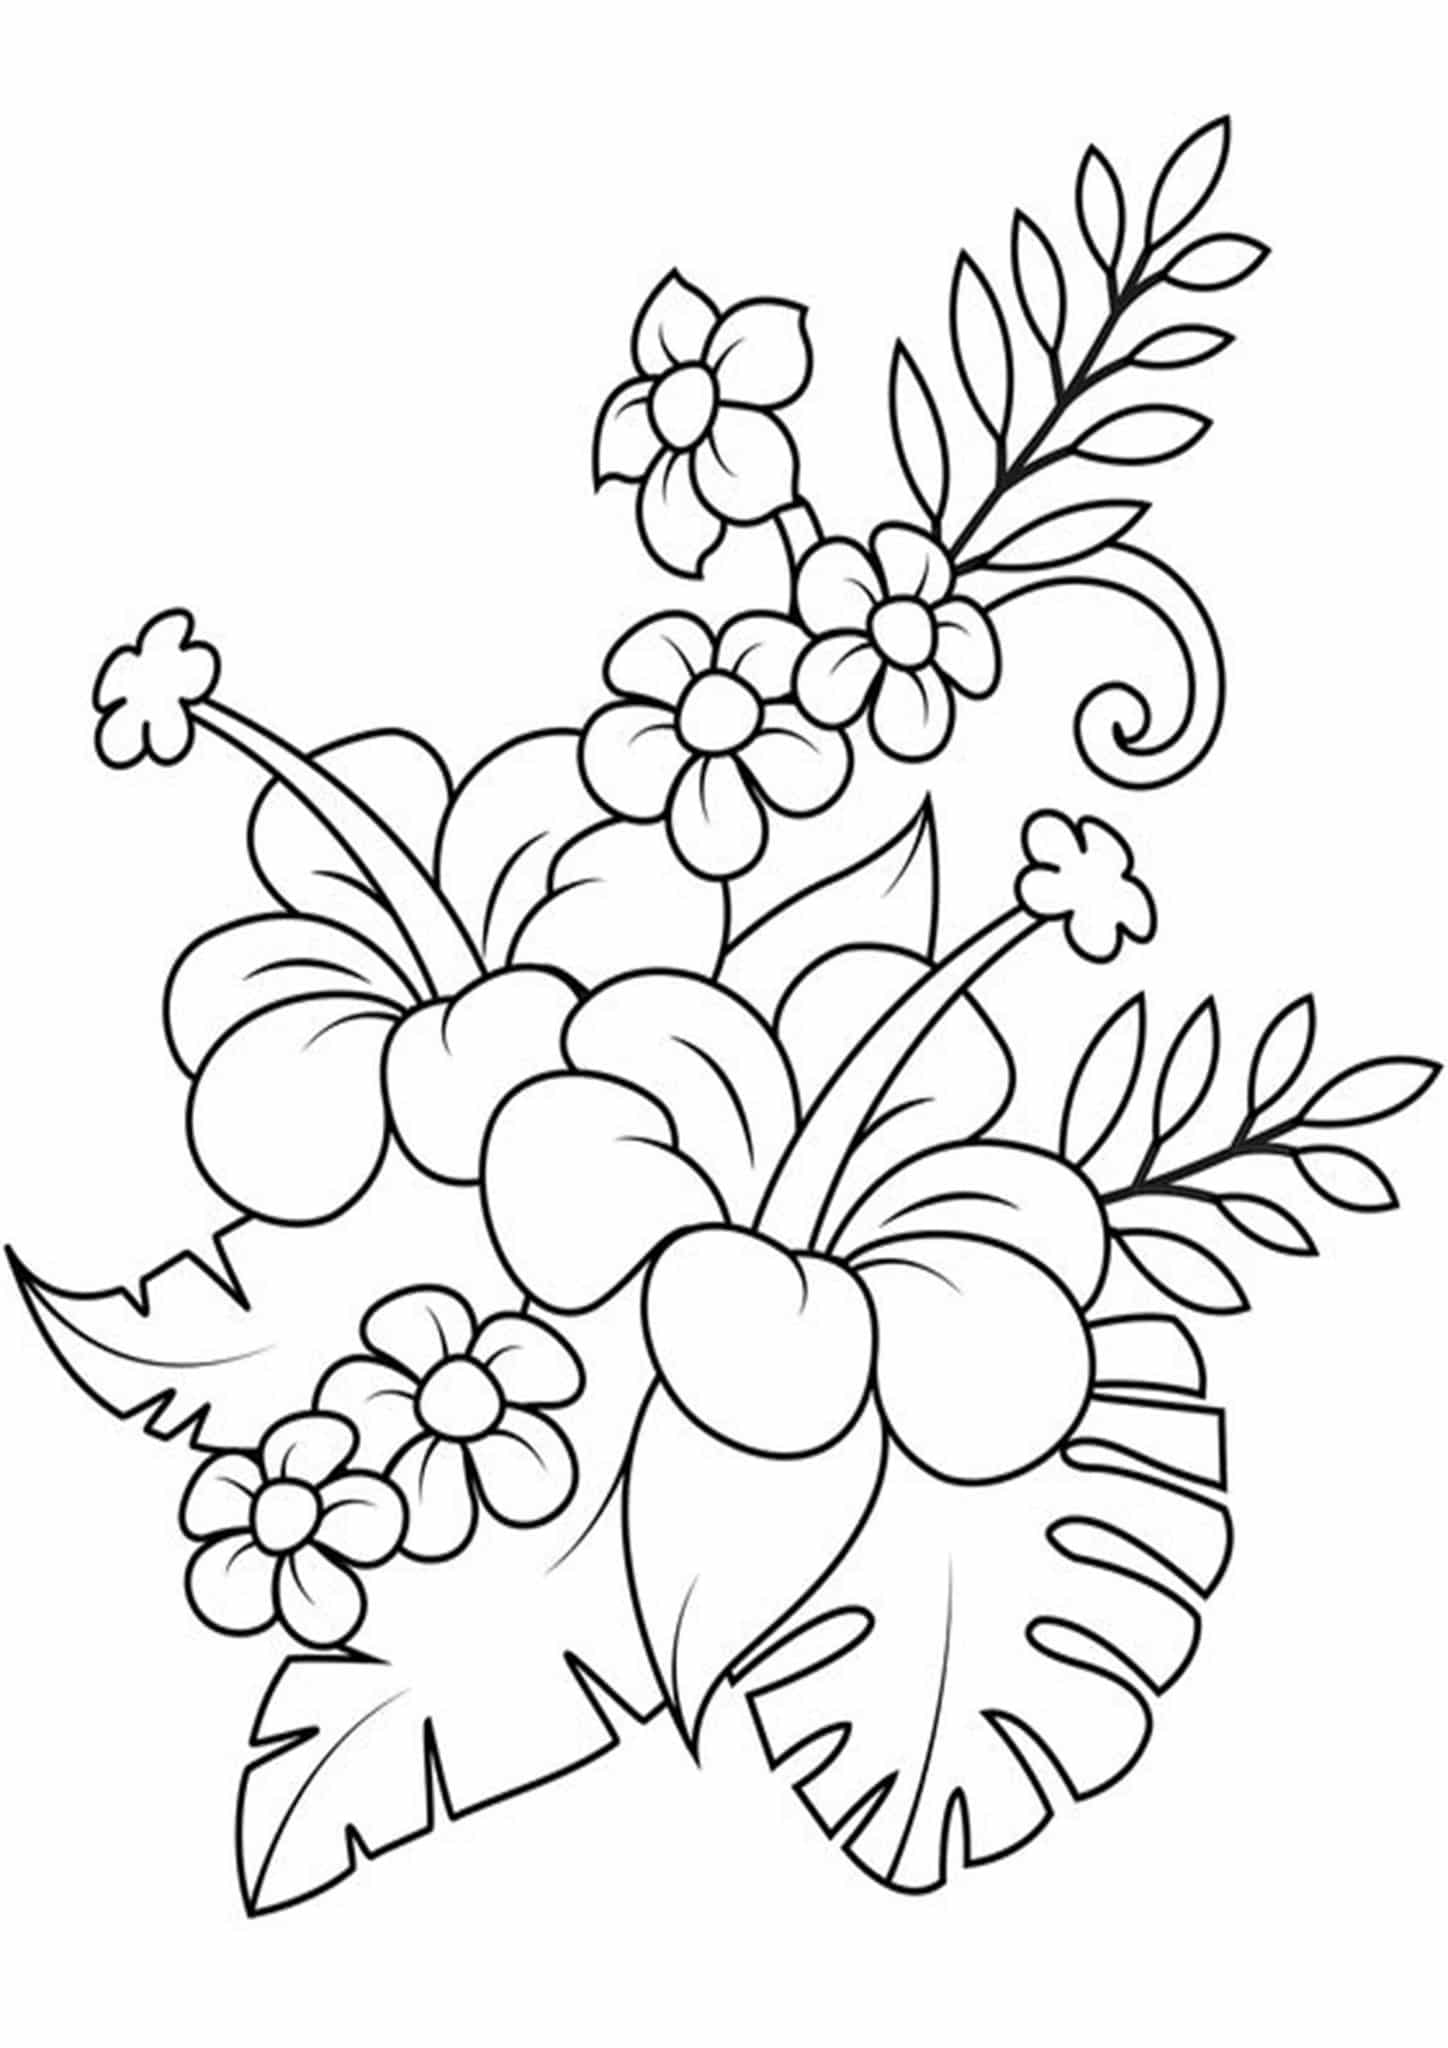 flowers coloring page spring flowers coloring pages printable flowers page coloring